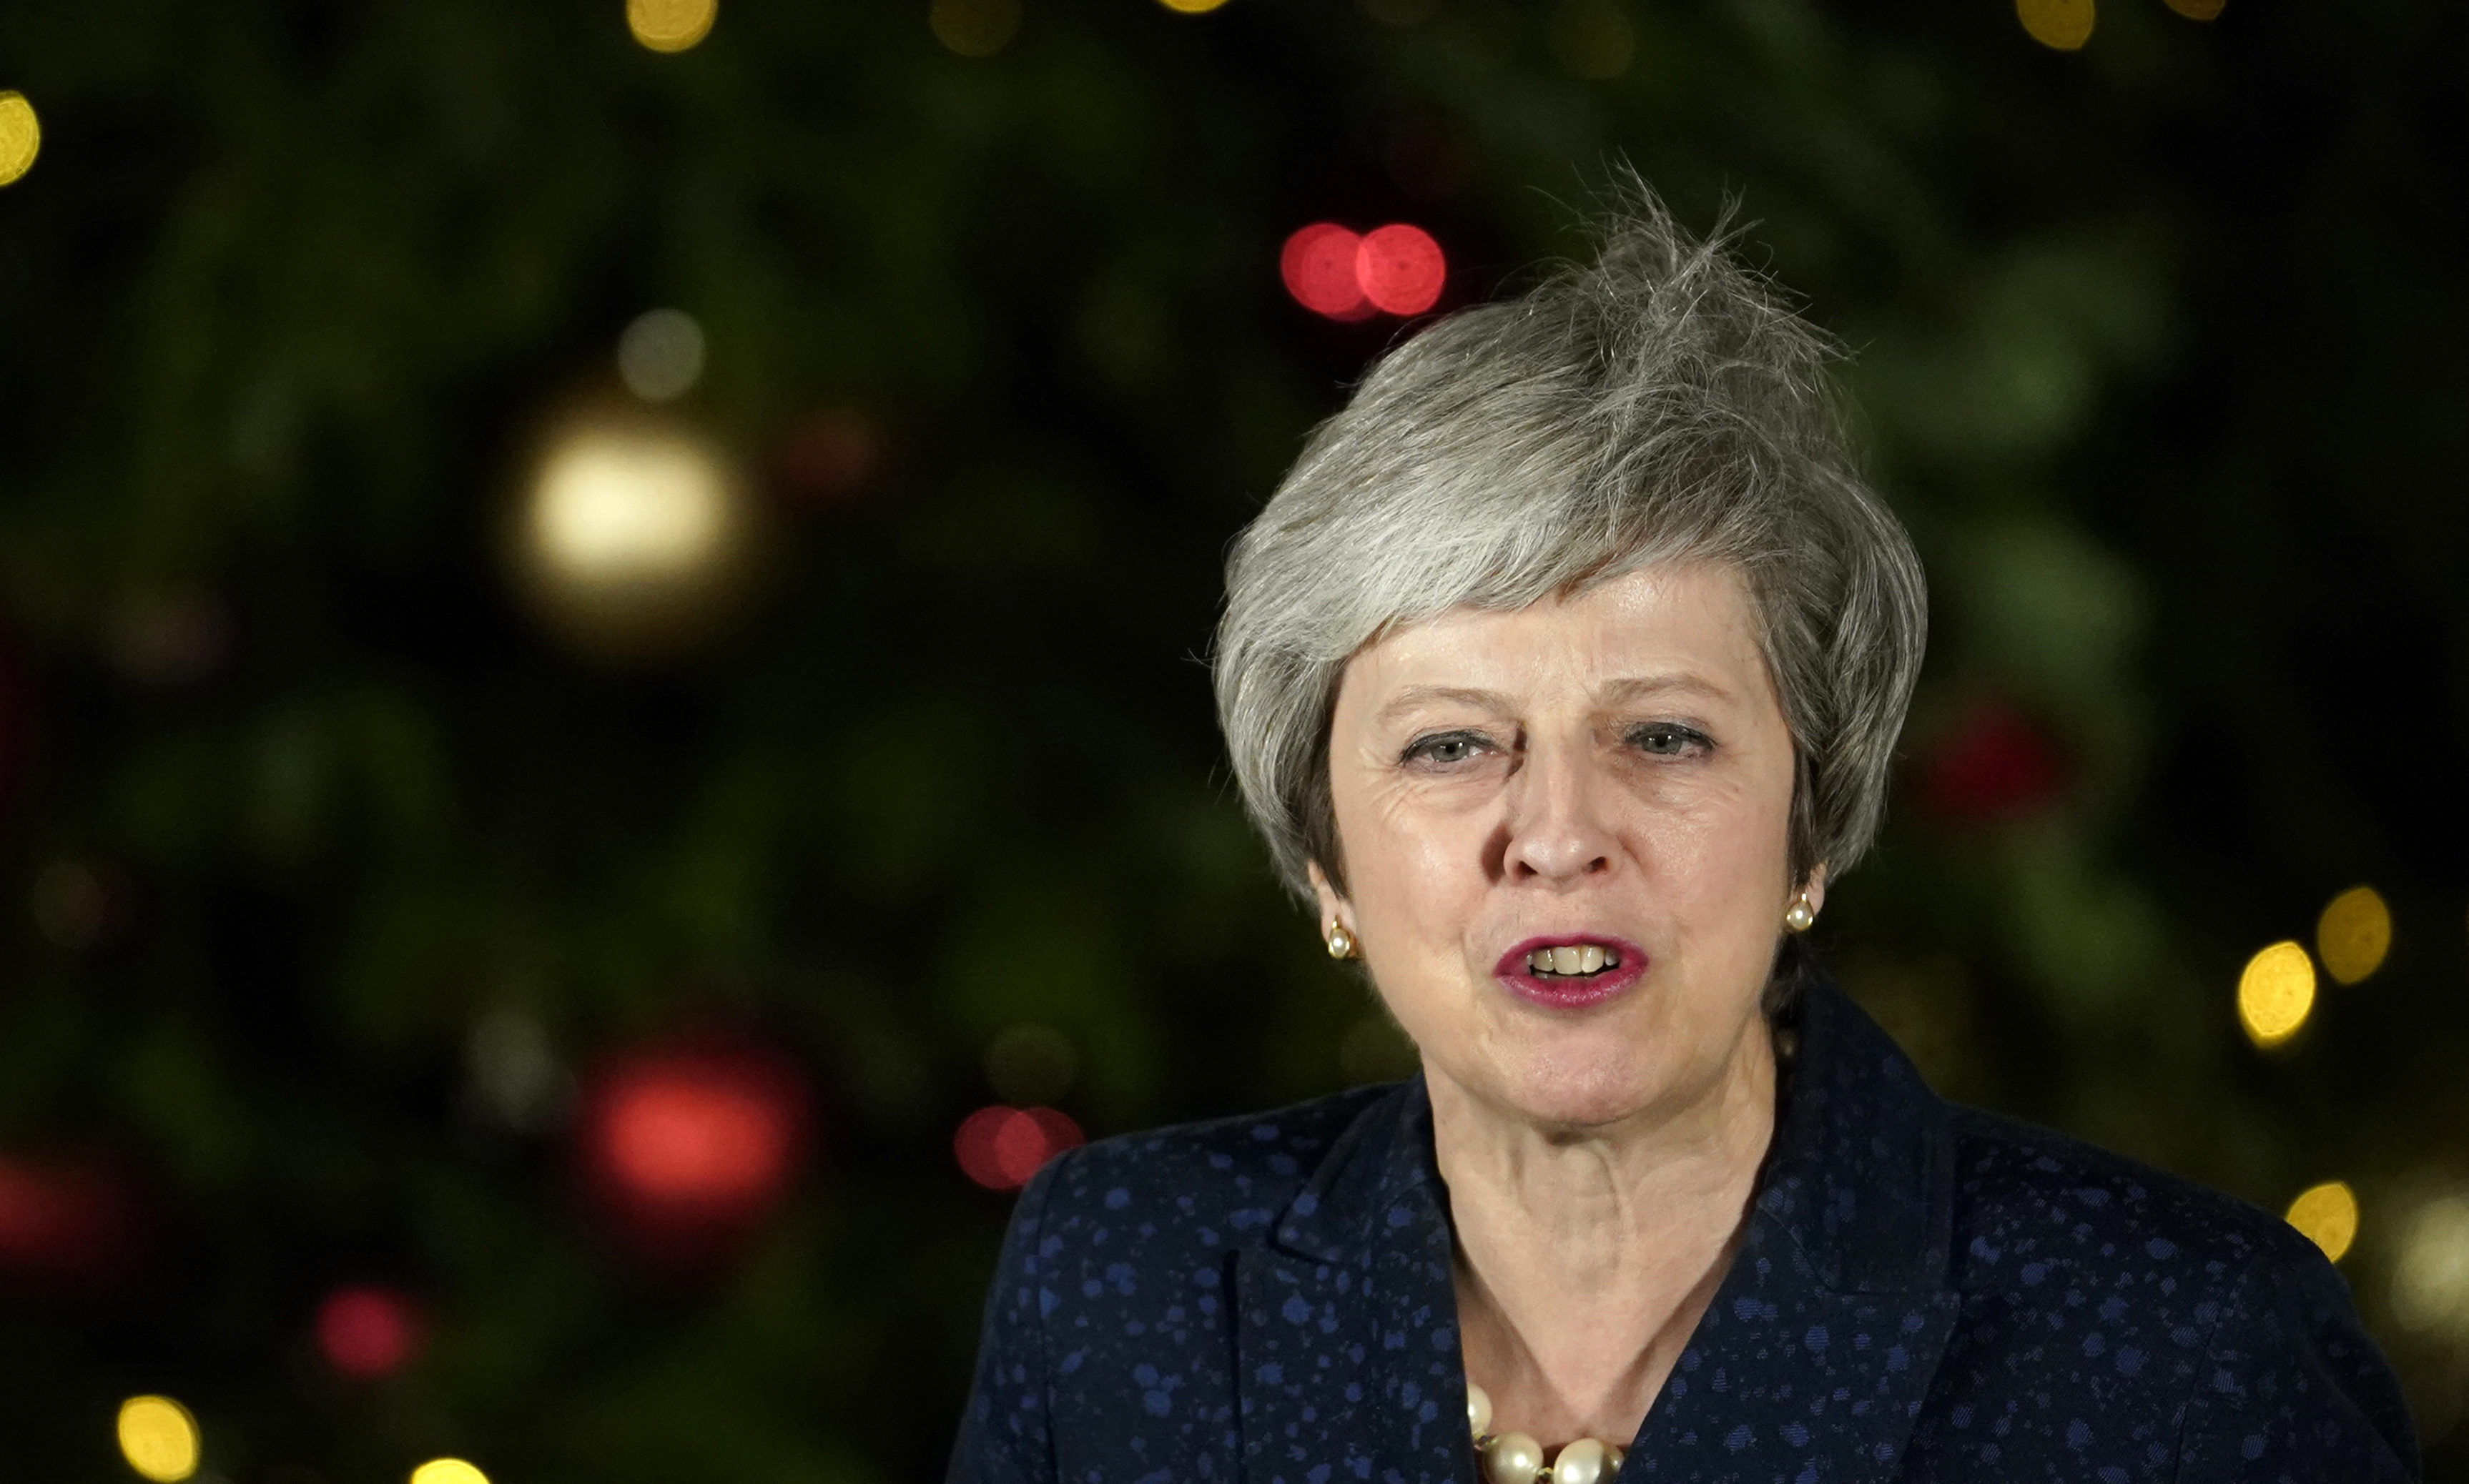 British Prime Minister Theresa May gives a speech after winning the confidence vote on December 12, 2018 in London, England.